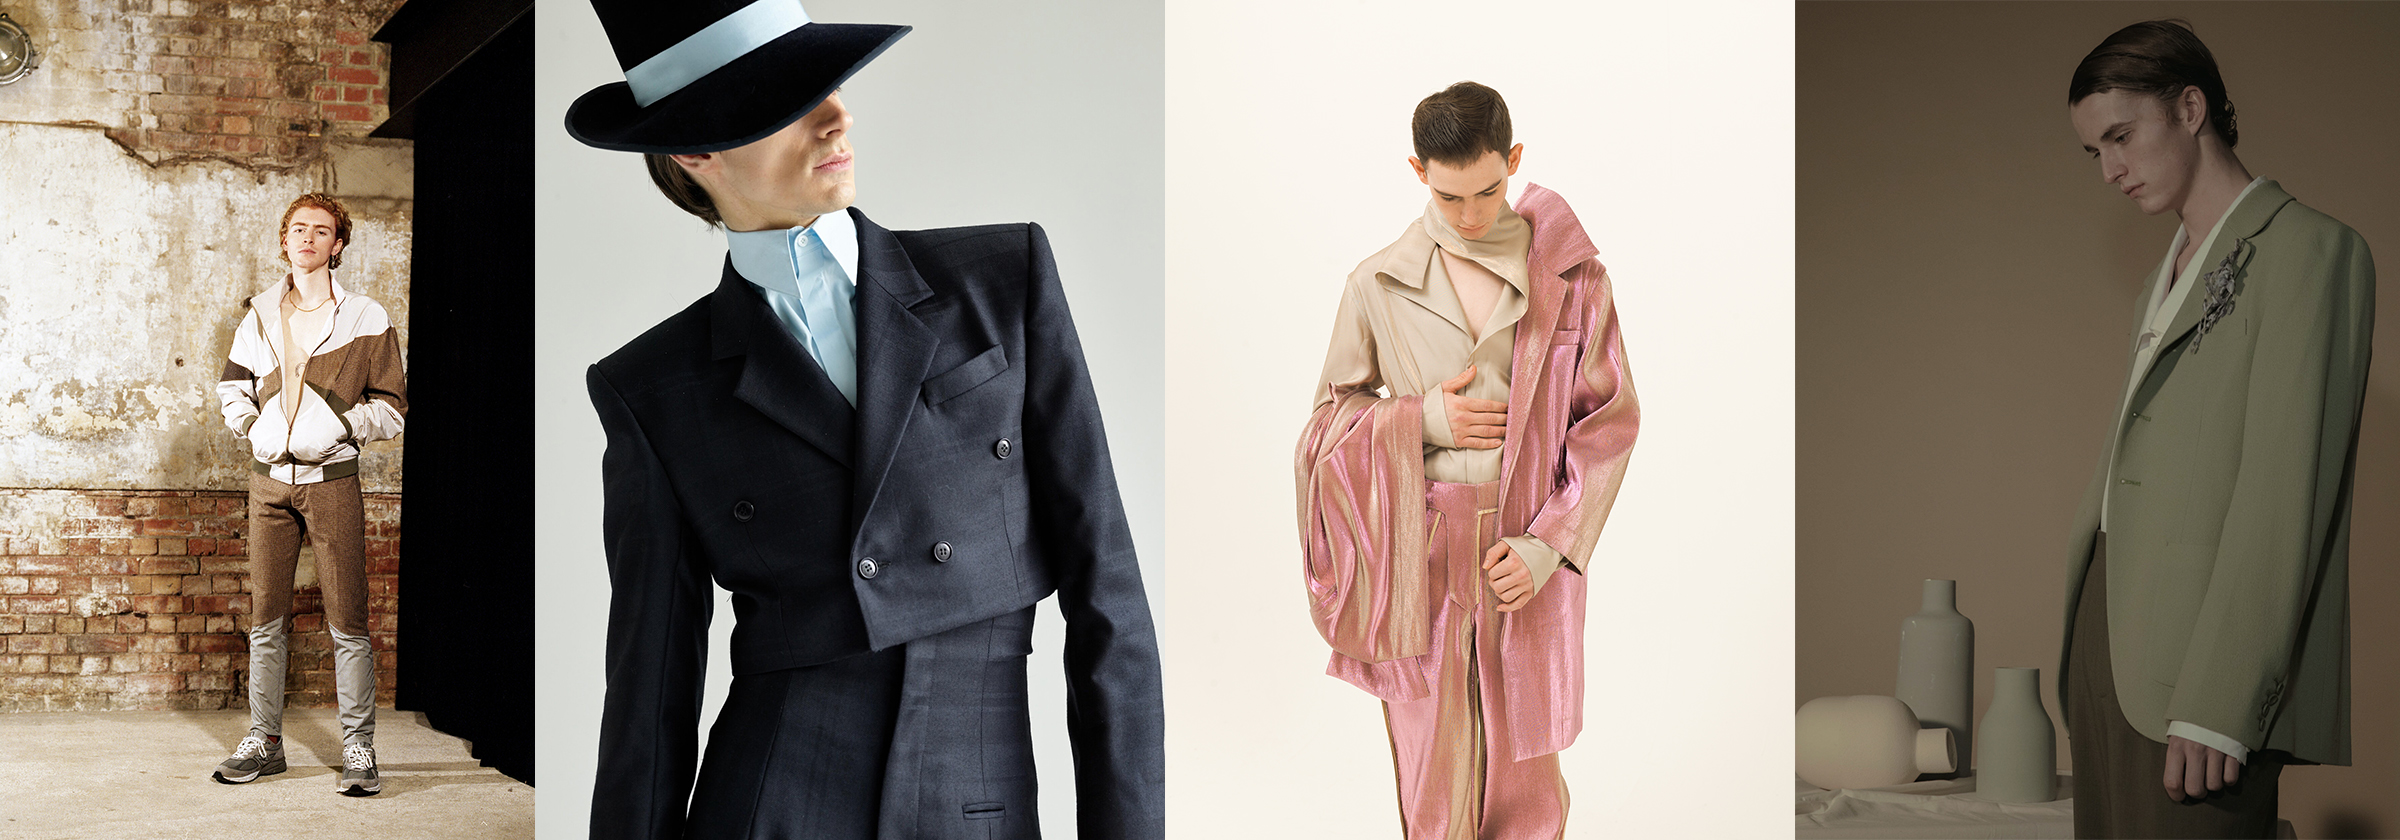 Various male models posing with different outfits